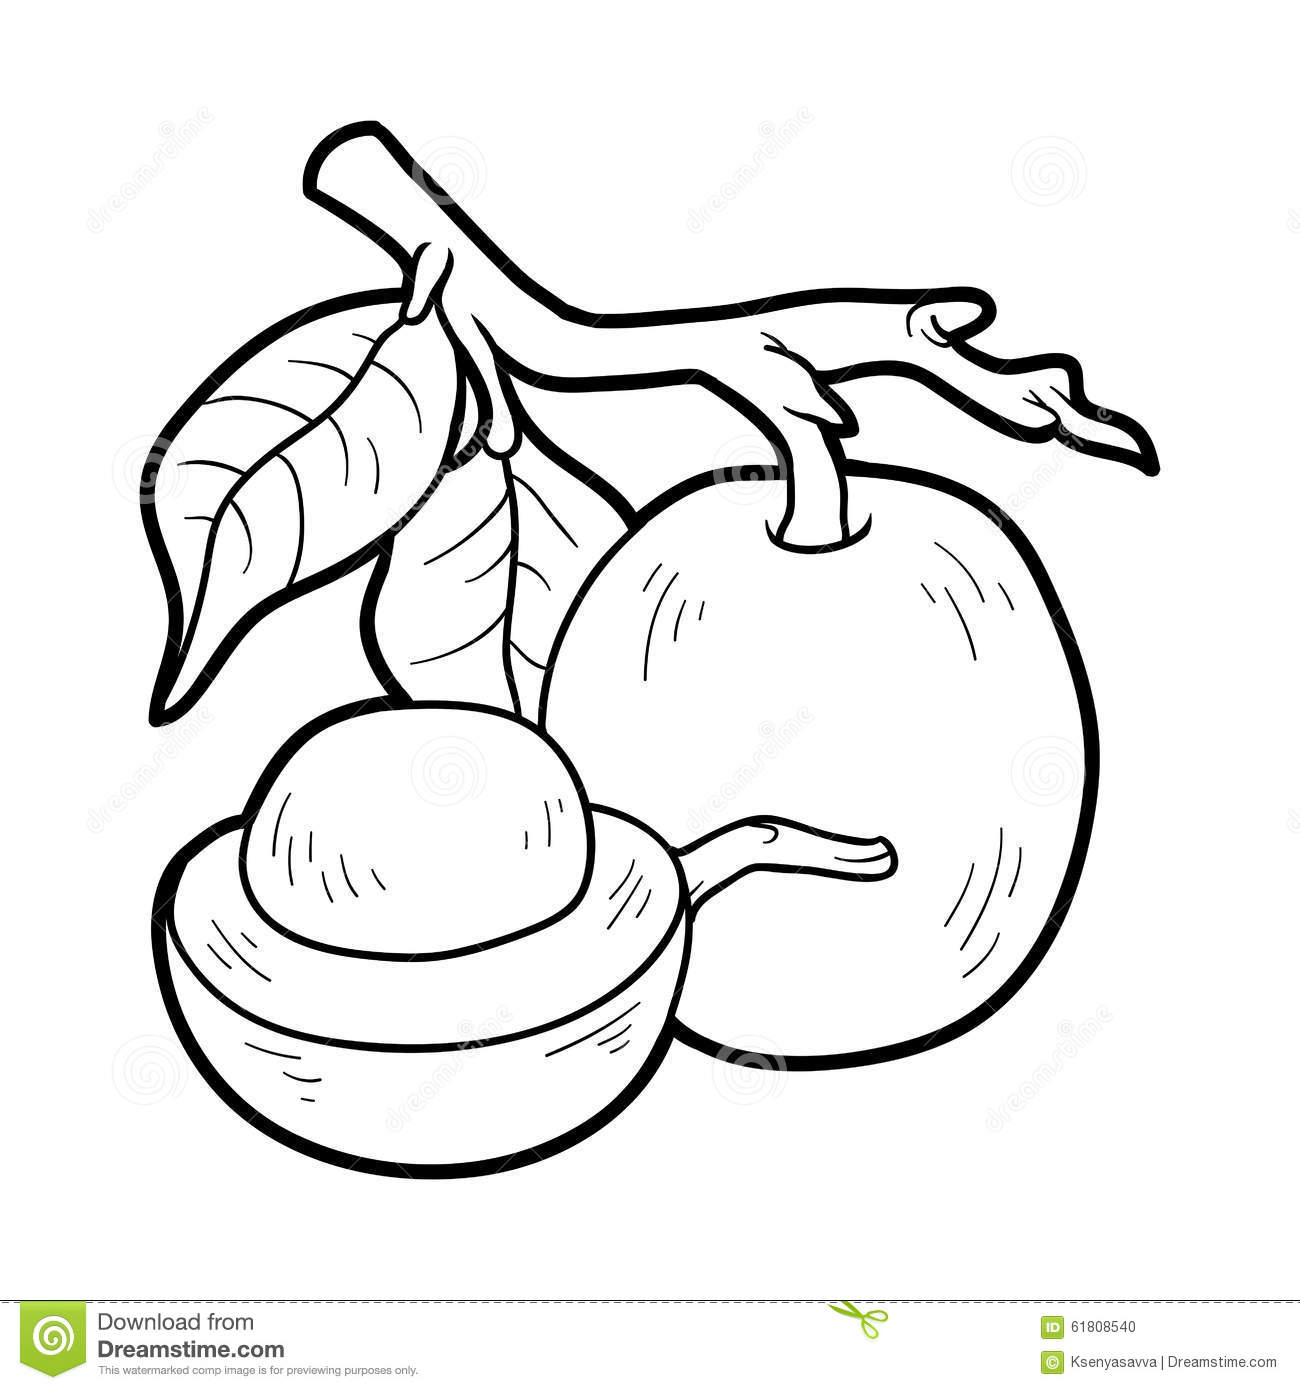 Download Coloring Book For Children Fruits And Vegetables Ximenia Stock Vector